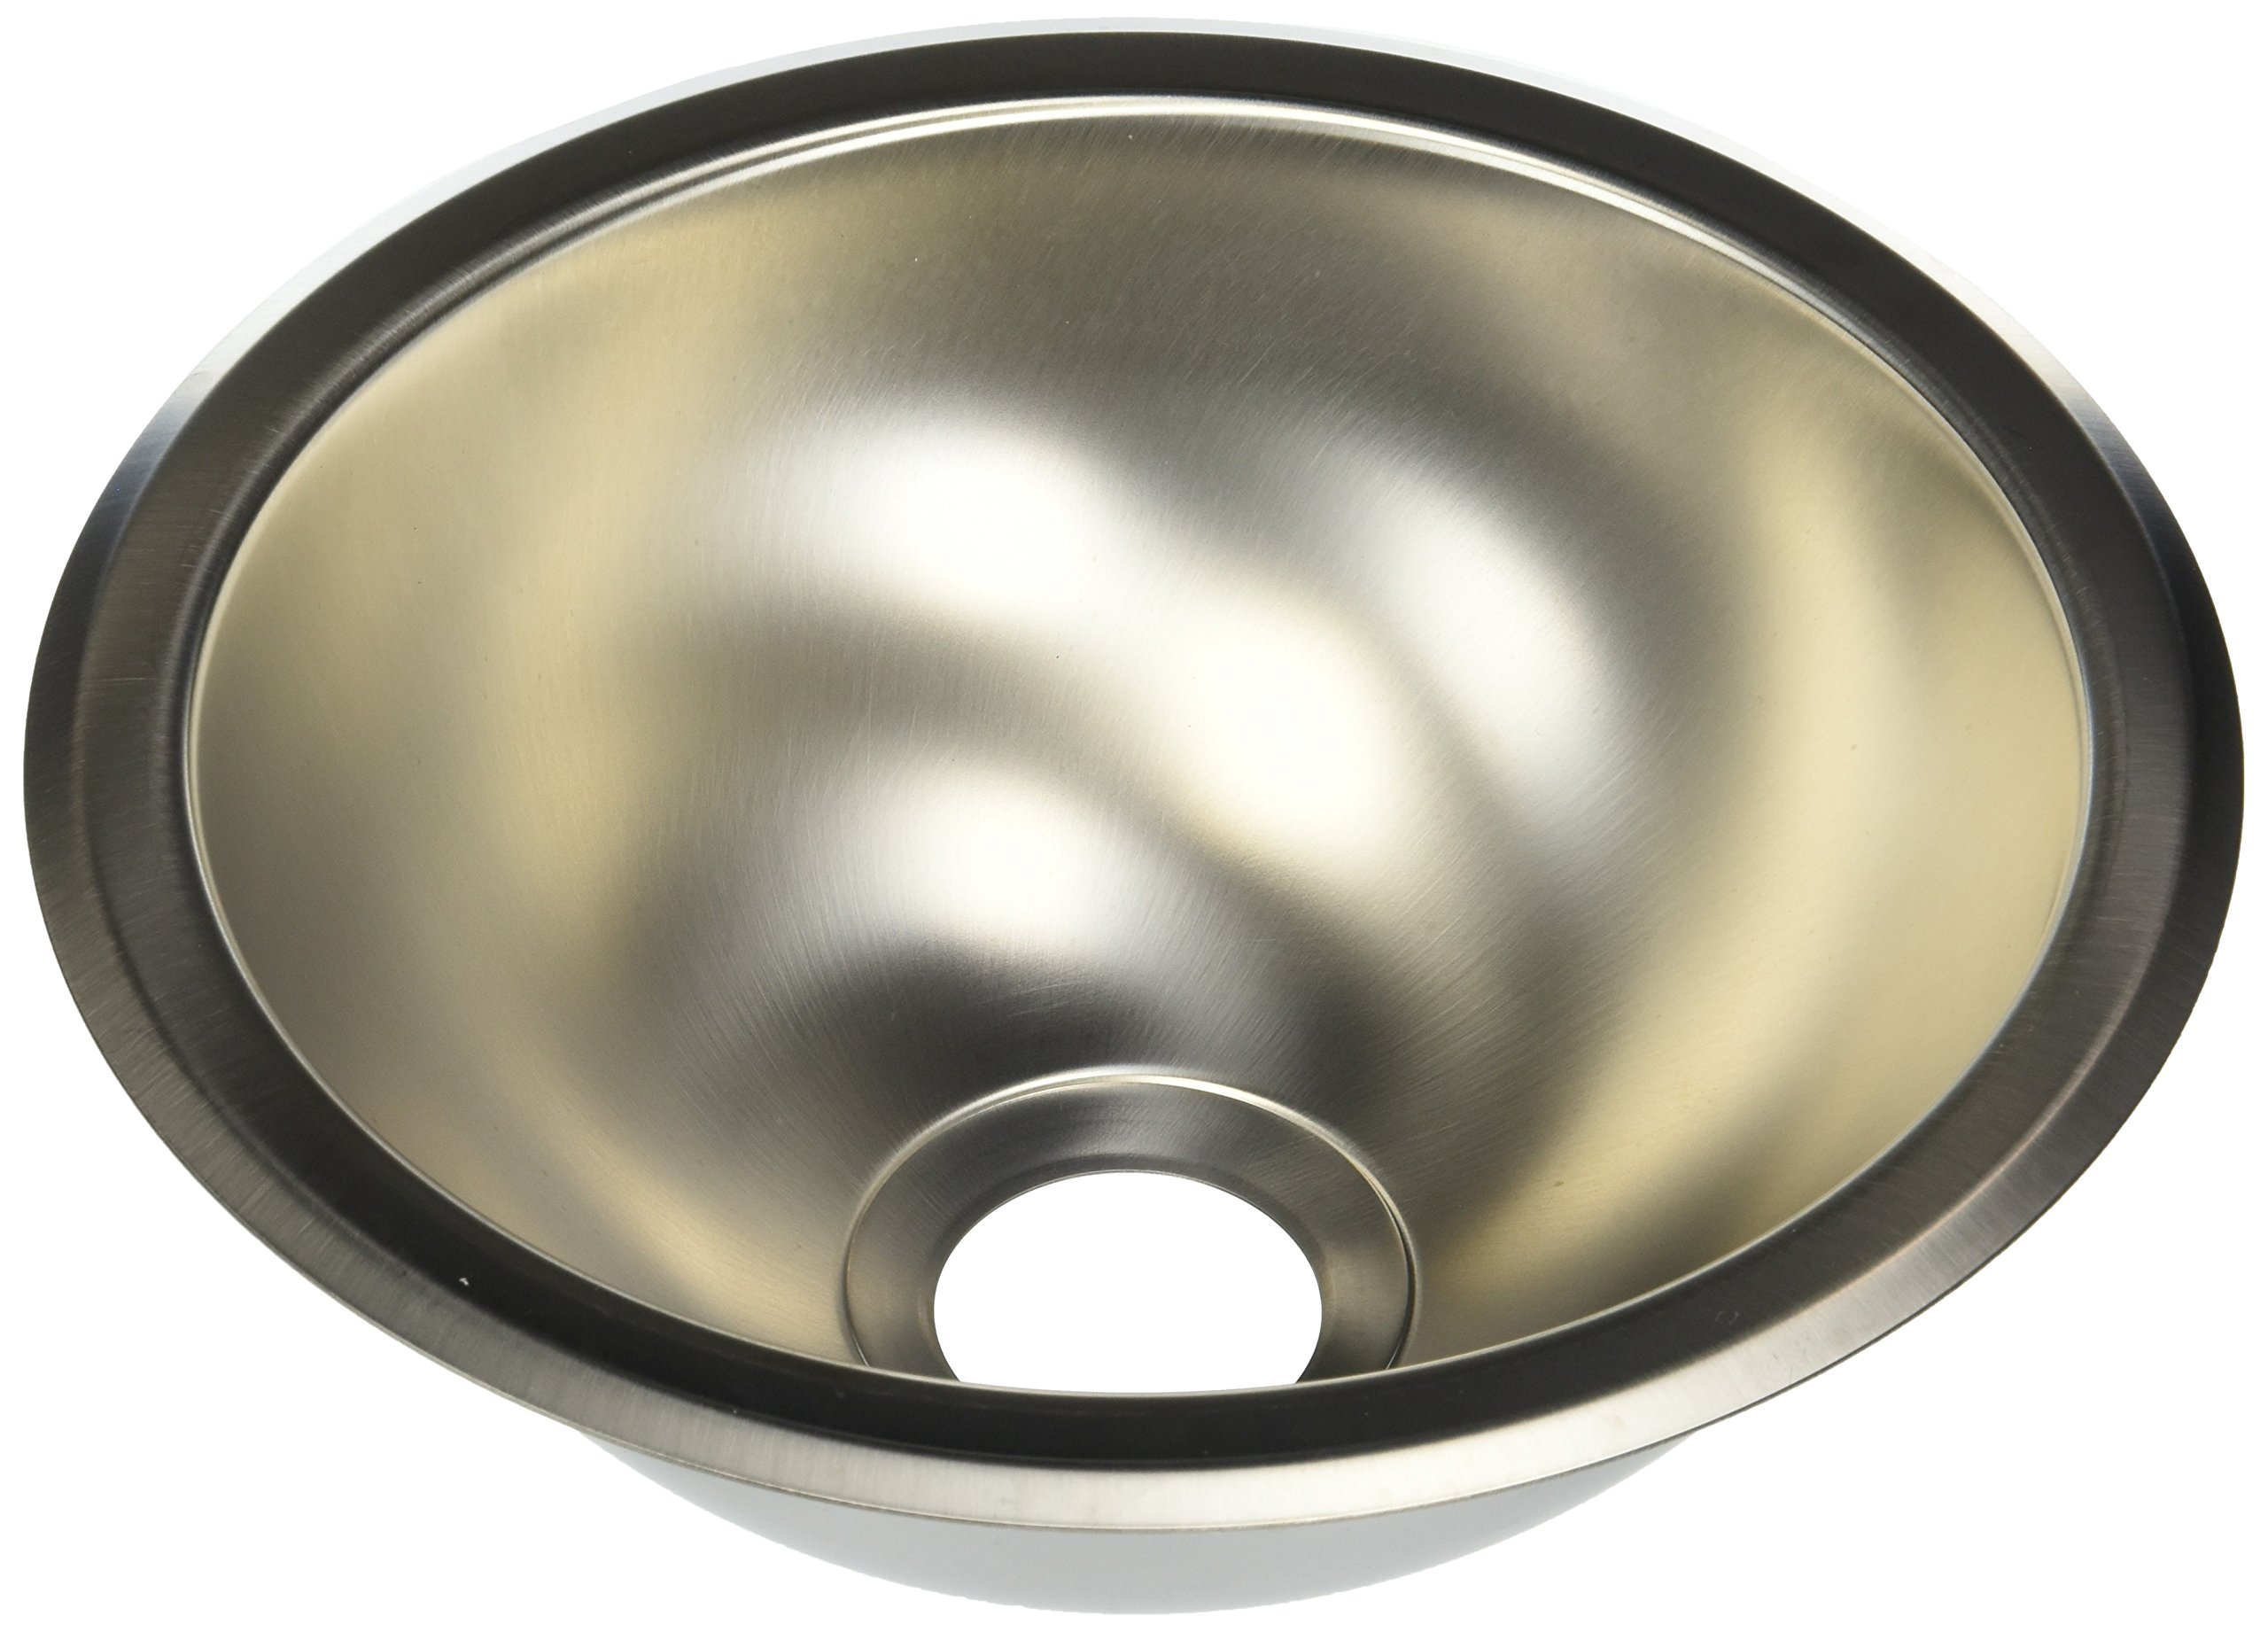 STERLING 111-0 10-Inch Round Lavatory, Stainless Steel